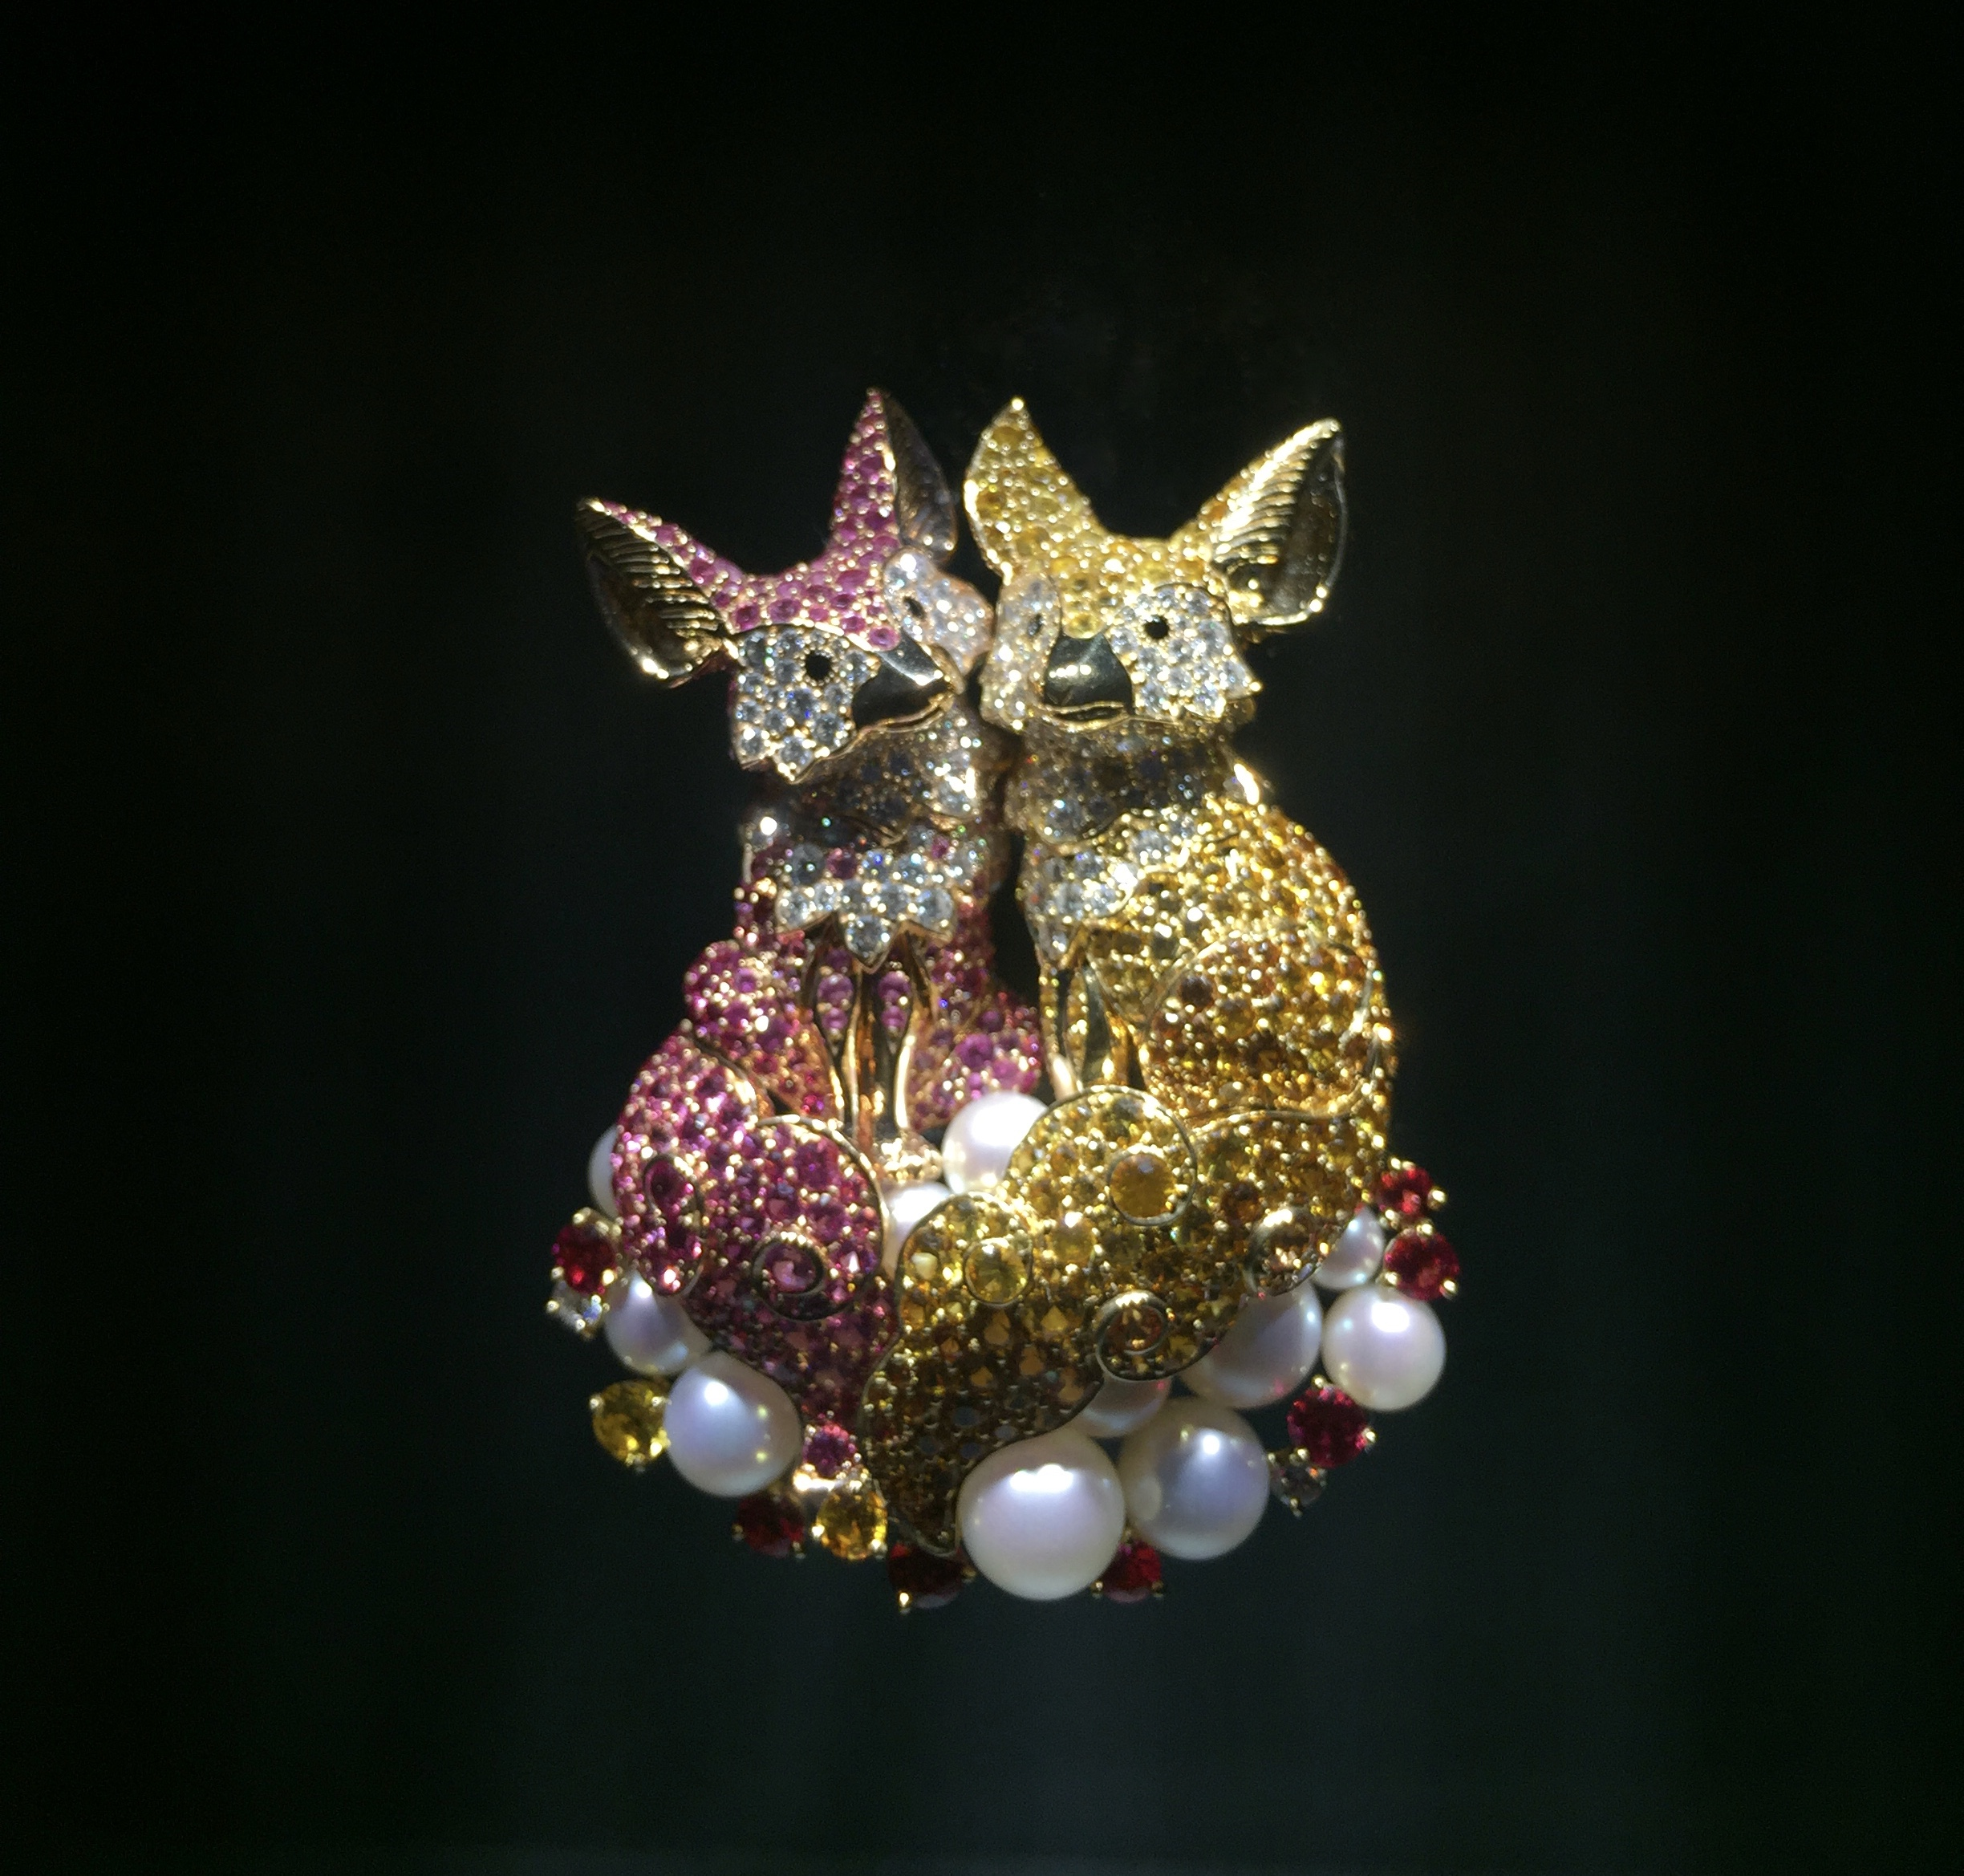 """Van Cleef and Arpels created this pair of bejeweled hyenas awash with precious gems for their """"Noah's Ark"""" exhibition featured in New York from November 3rd-19th, 2017."""